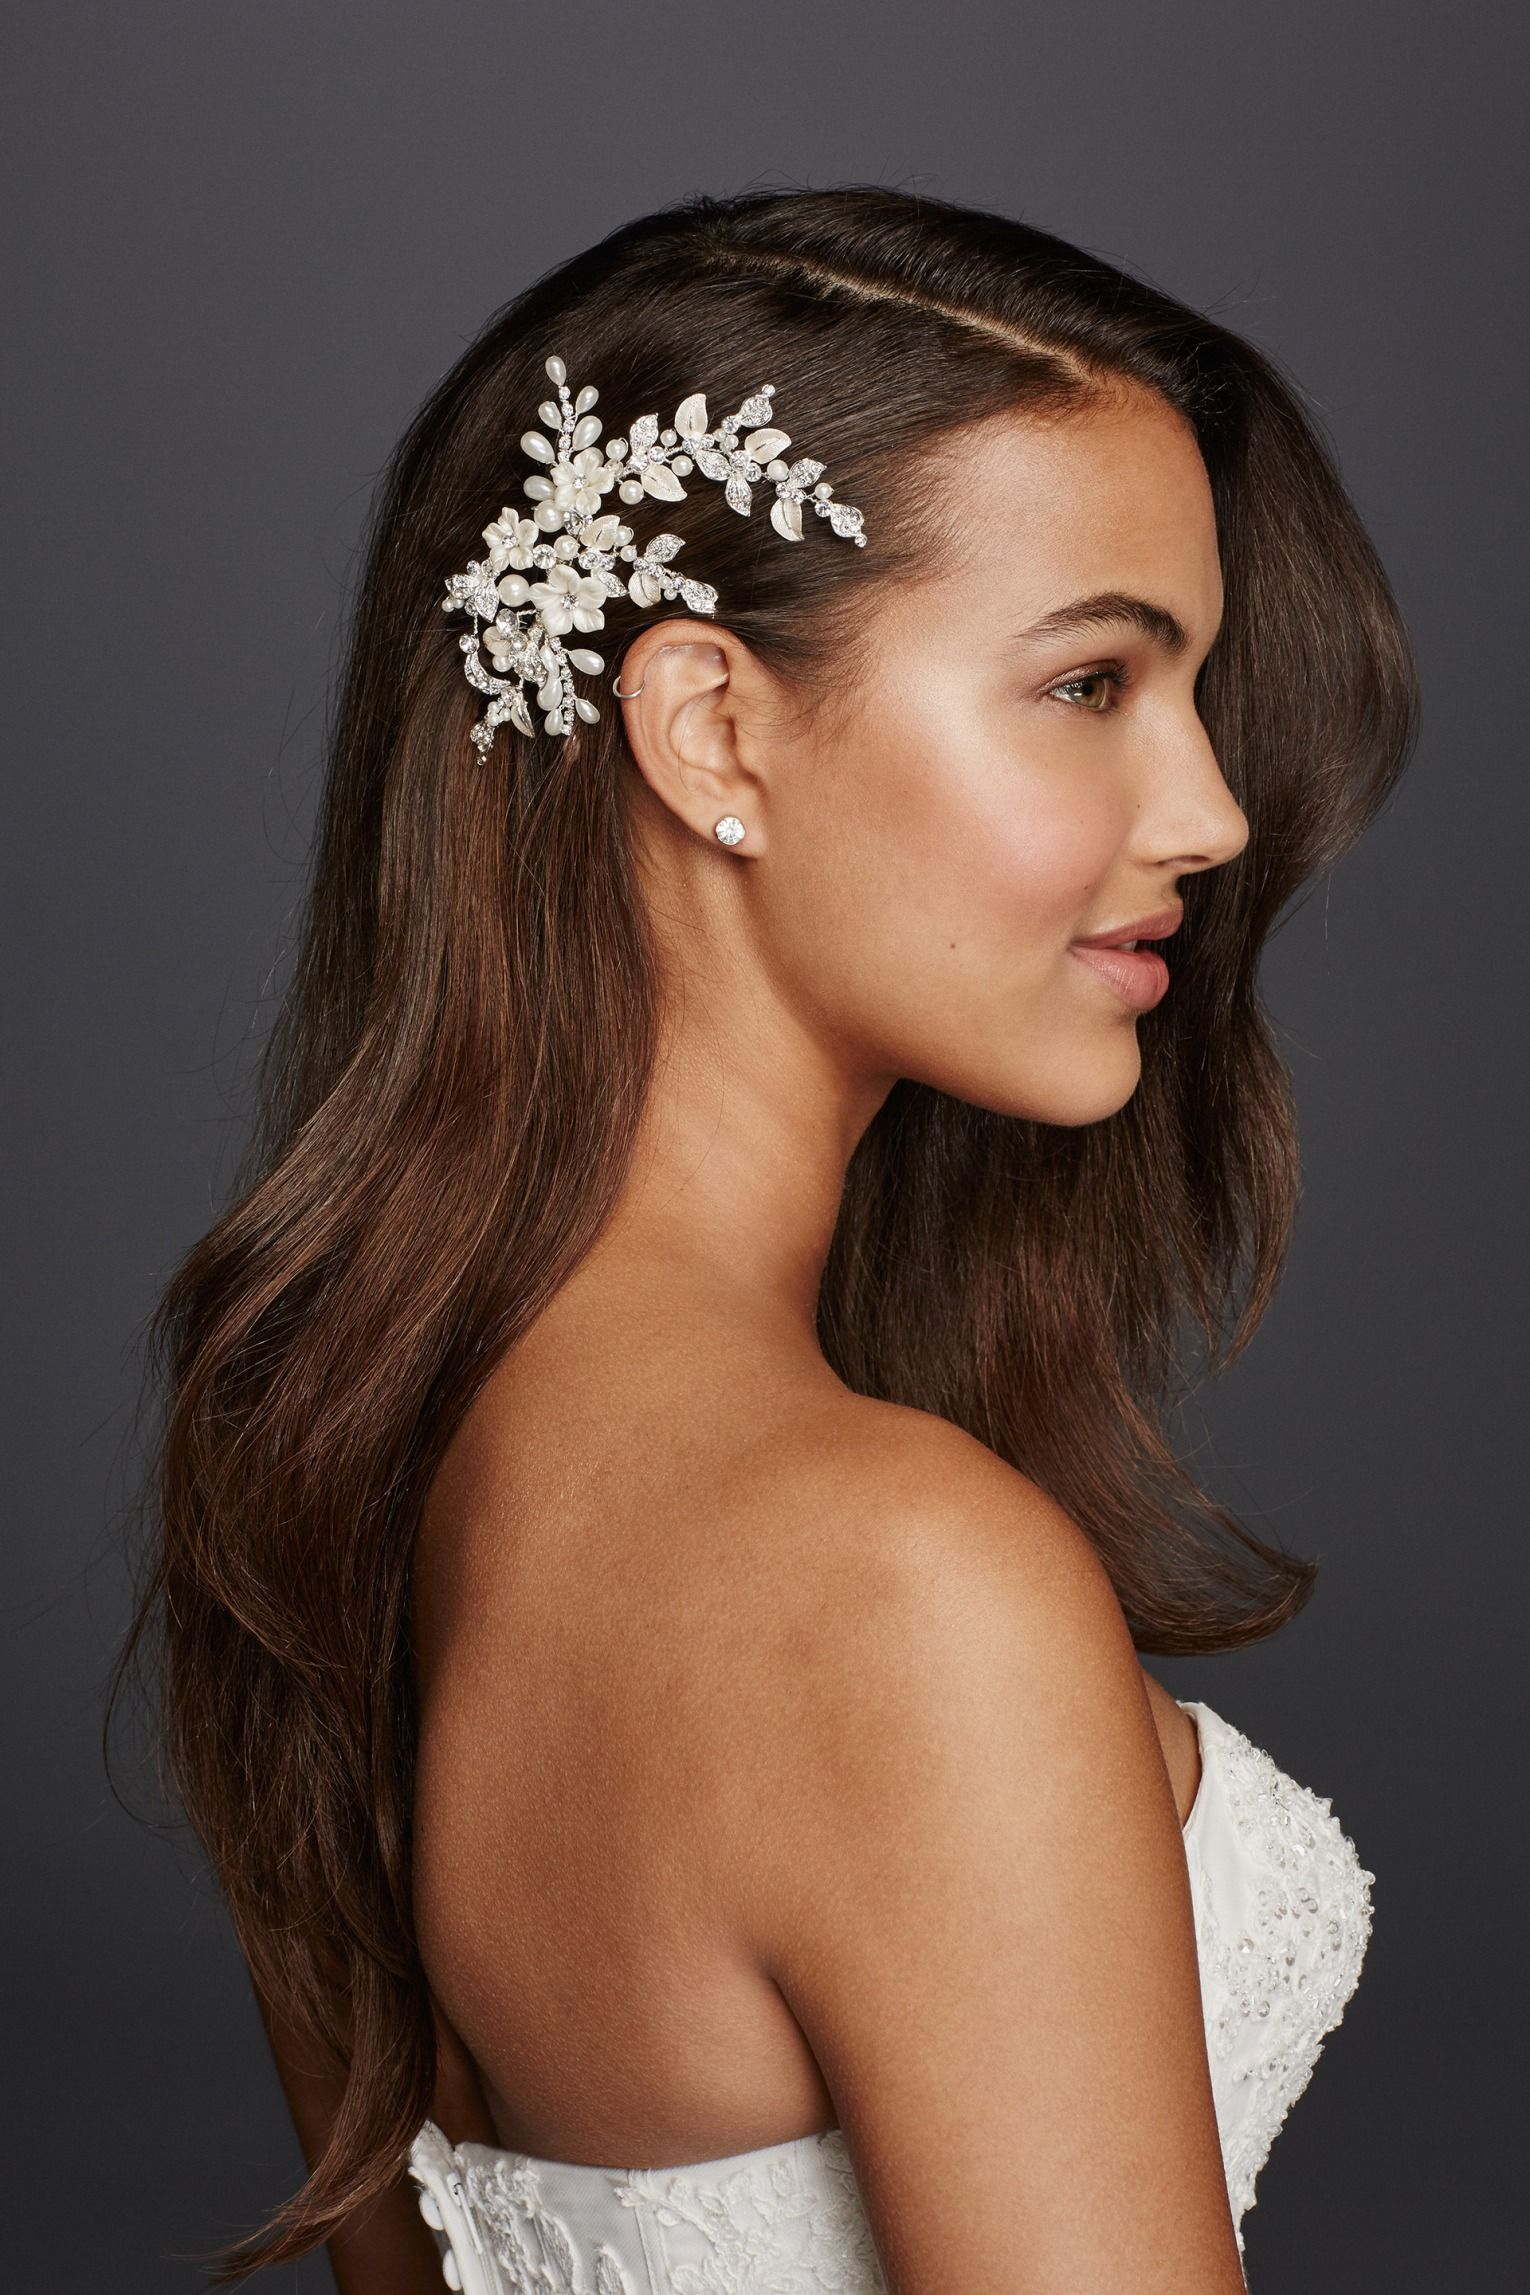 Spruce up classic soft waves with pearls, rhinestones, and